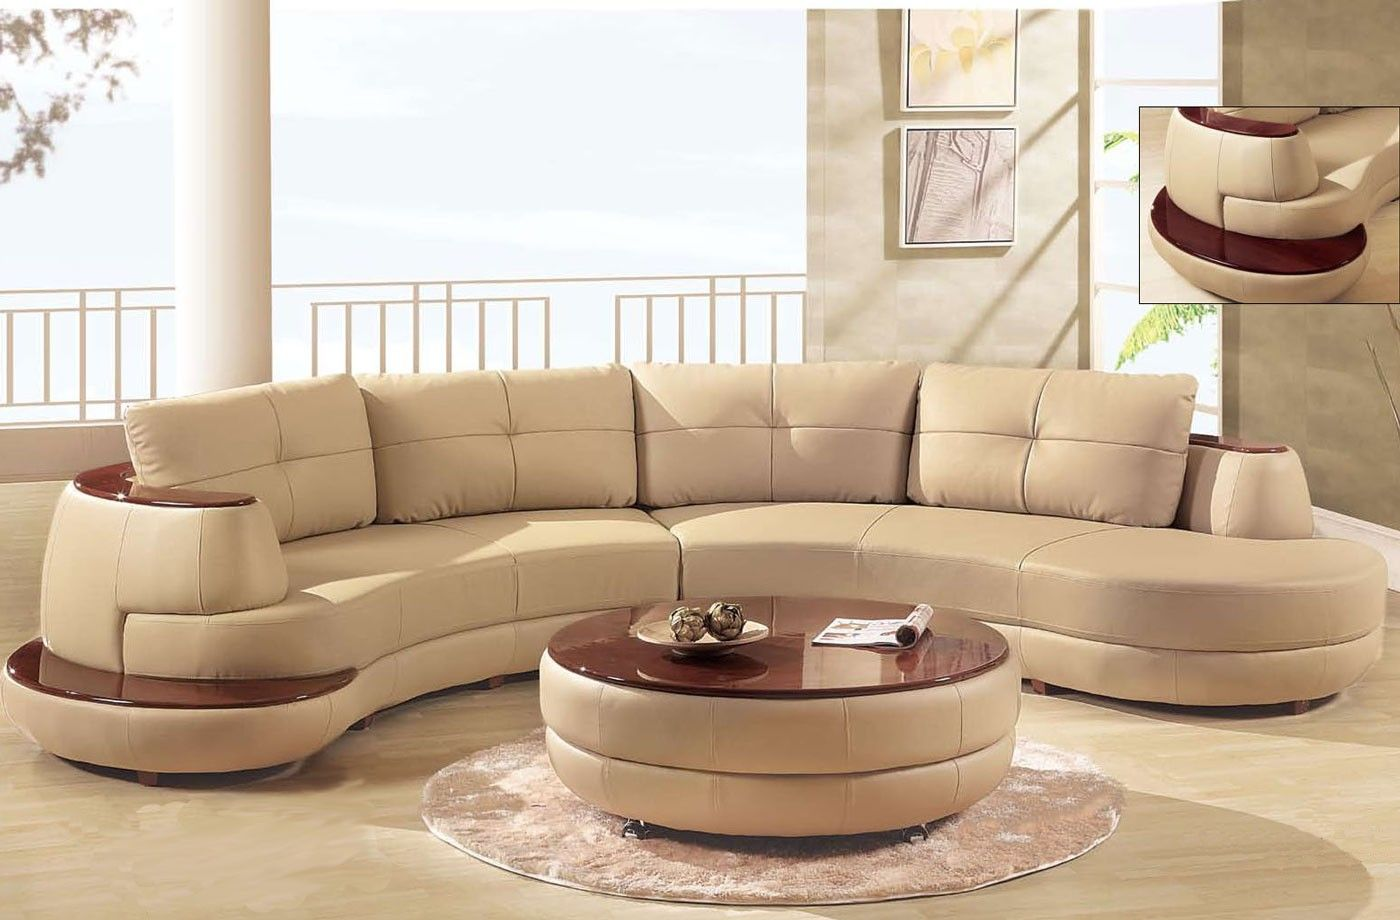 luxury beige sectional curved shaped sofa design ideas for living rh pinterest com